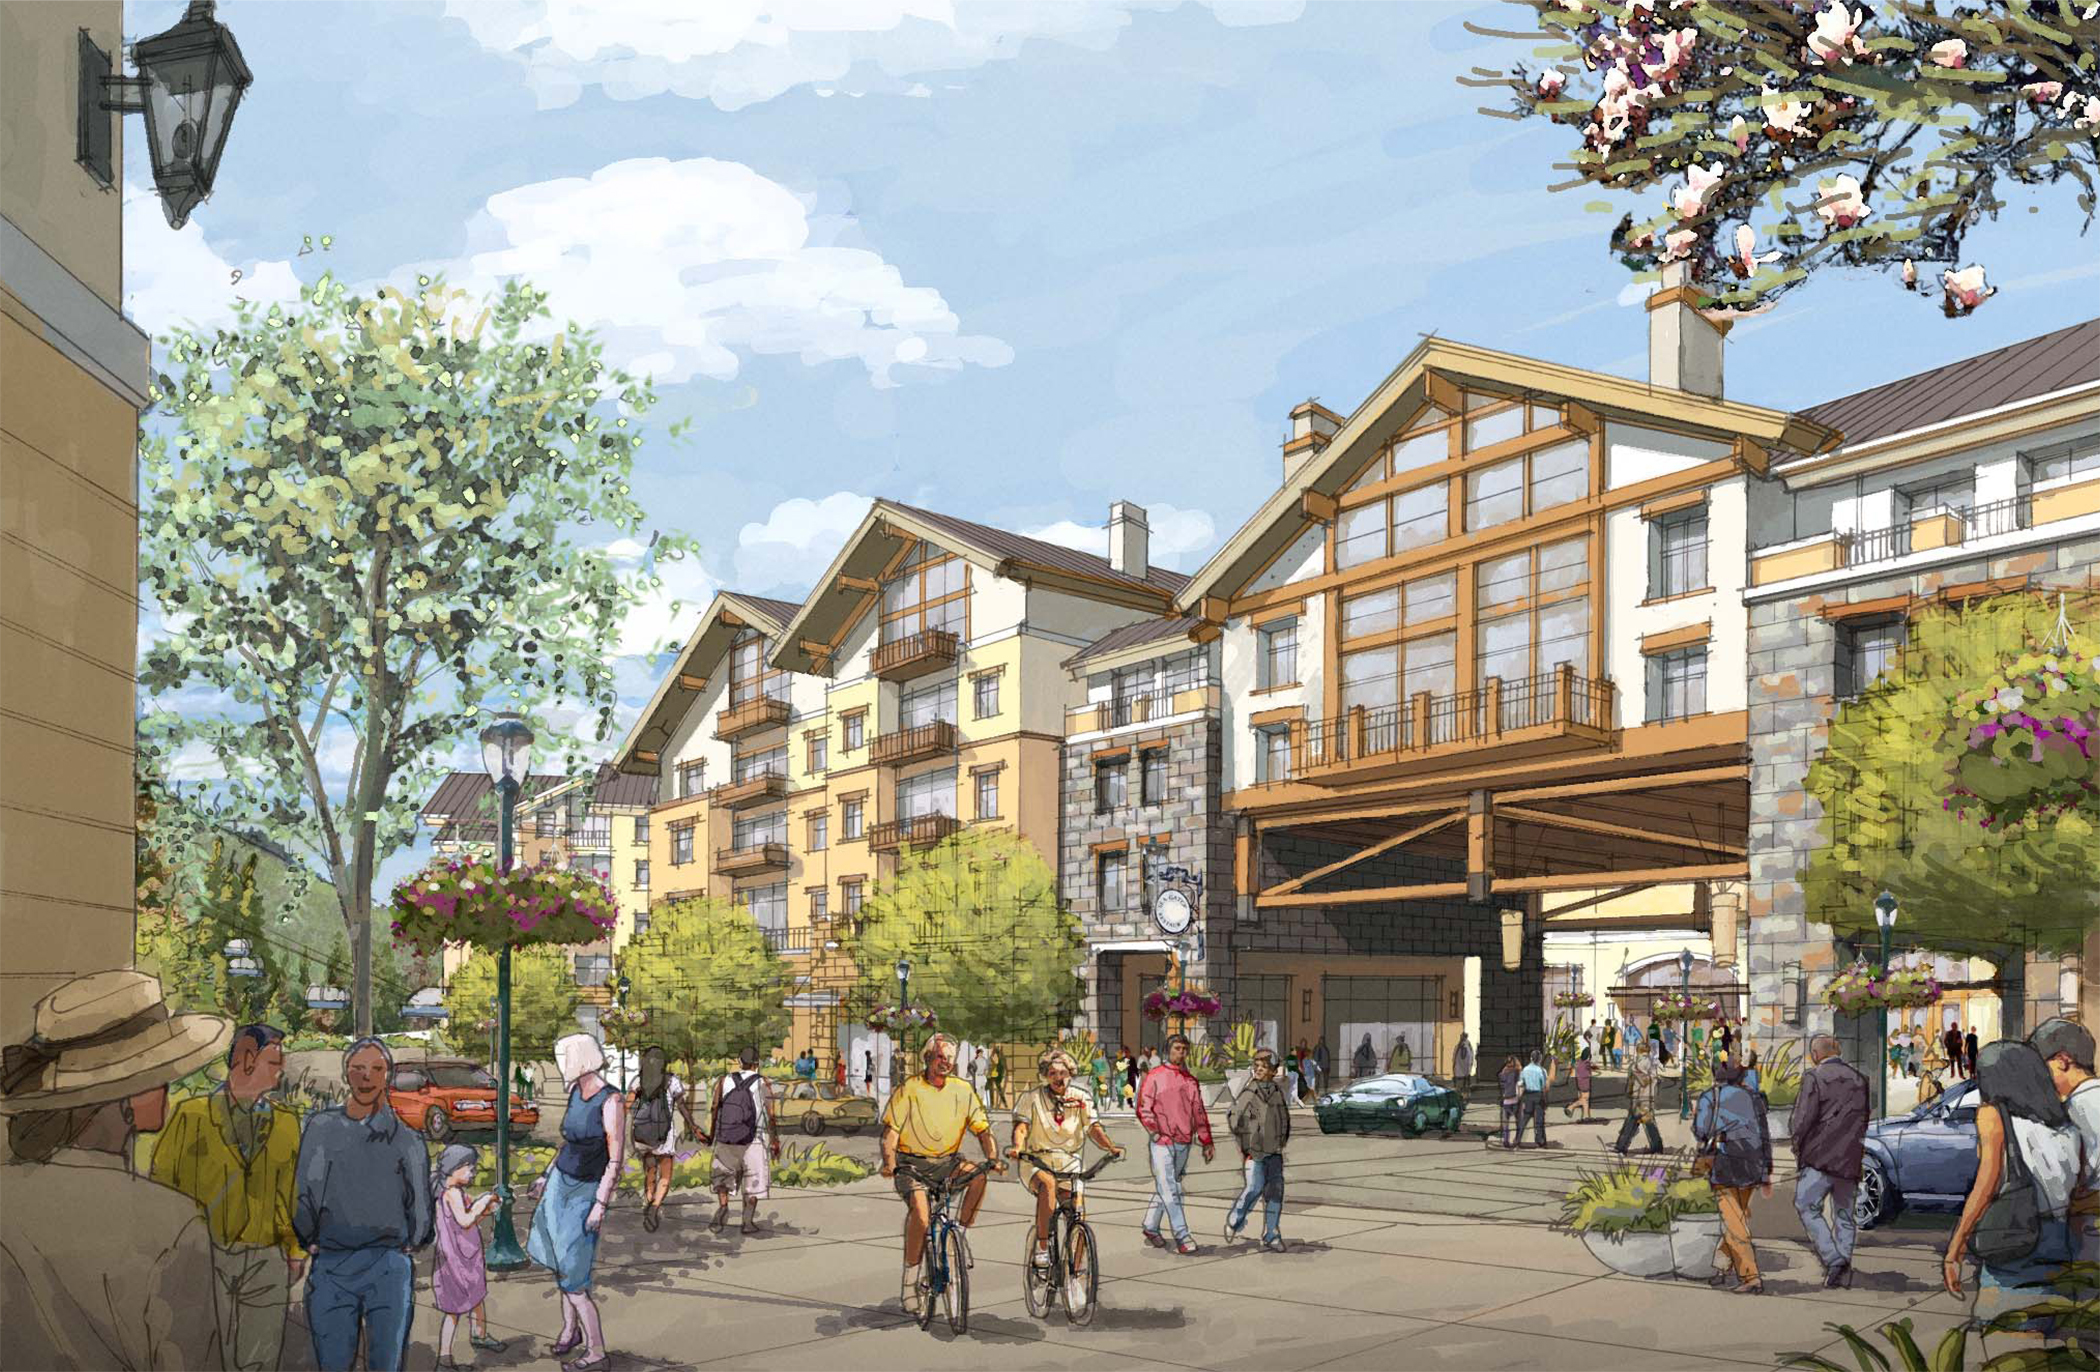 """<img src="""" studioINSITE_Ever_Vail_Pedestrian_Bridge """"alt=""""Vail, Mountain Commnity, Ever Vail, Sking, Snowboarding, Mountain Living, Planning, Landscape Architecture, Mountain Resort, Rocky Mountains, Winter,  """" title=""""Ever Vail""""/>"""